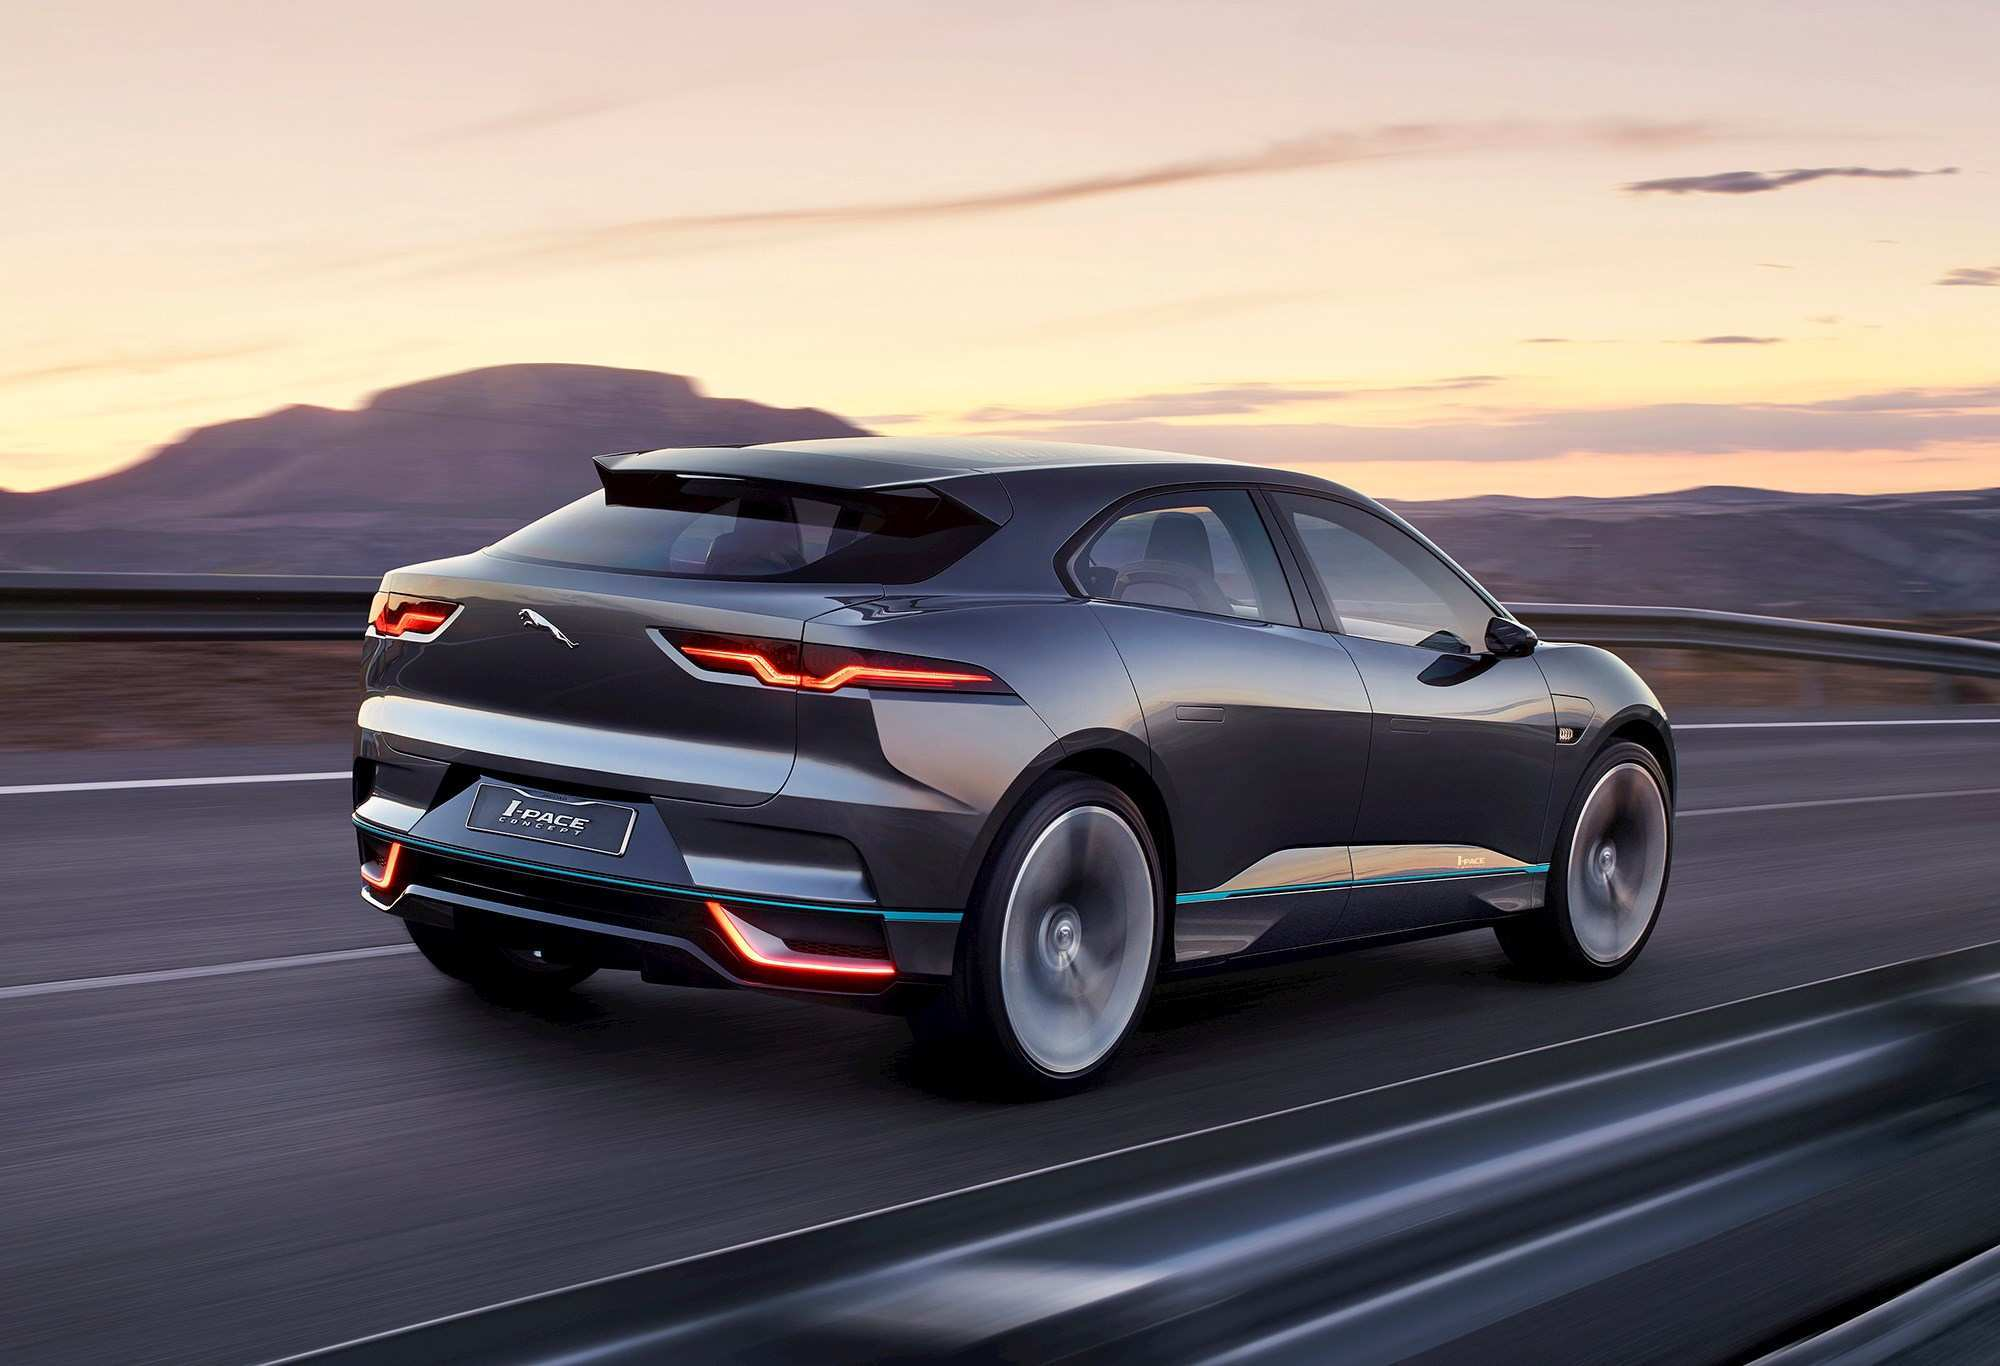 87 Best Review 2019 Jaguar I Pace Price Review by 2019 Jaguar I Pace Price